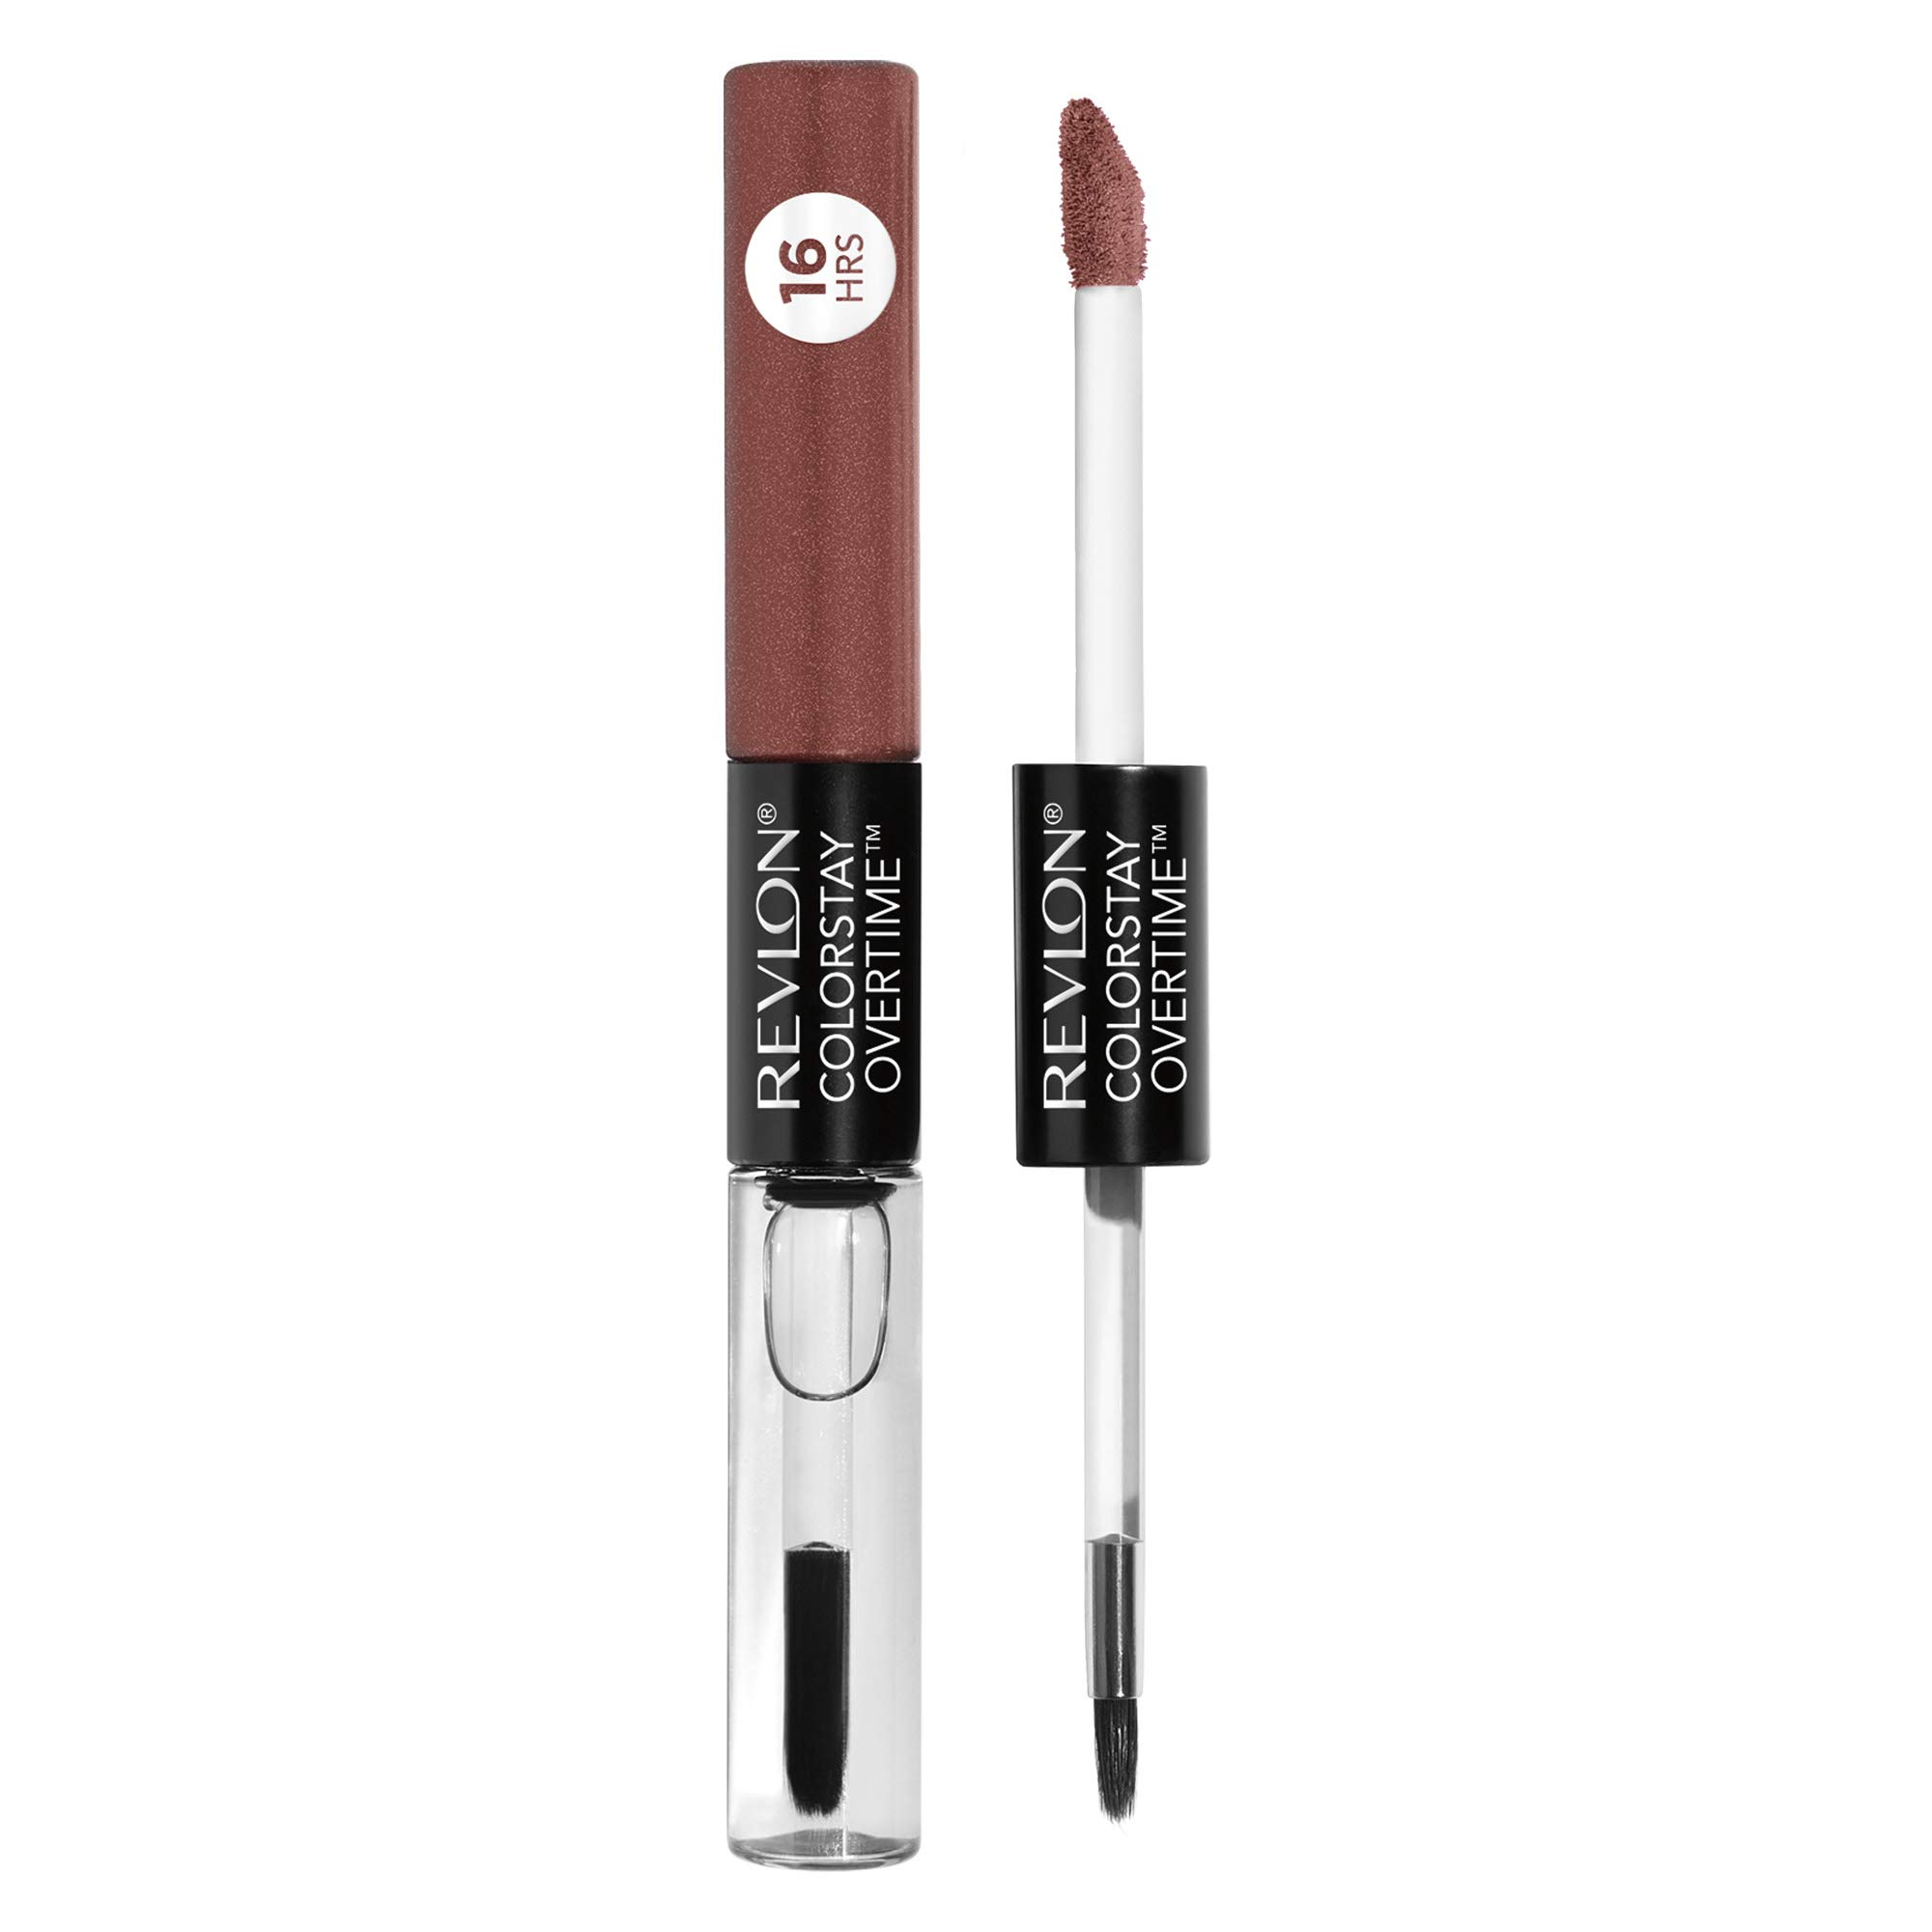 Revlon ColorStay Overtime Lipcolor, Dual Ended Longwearing Liquid Lipstick with Clear Lip Gloss, with Vitamin E in Nude, Faithful Fawn (320), 0.07 oz